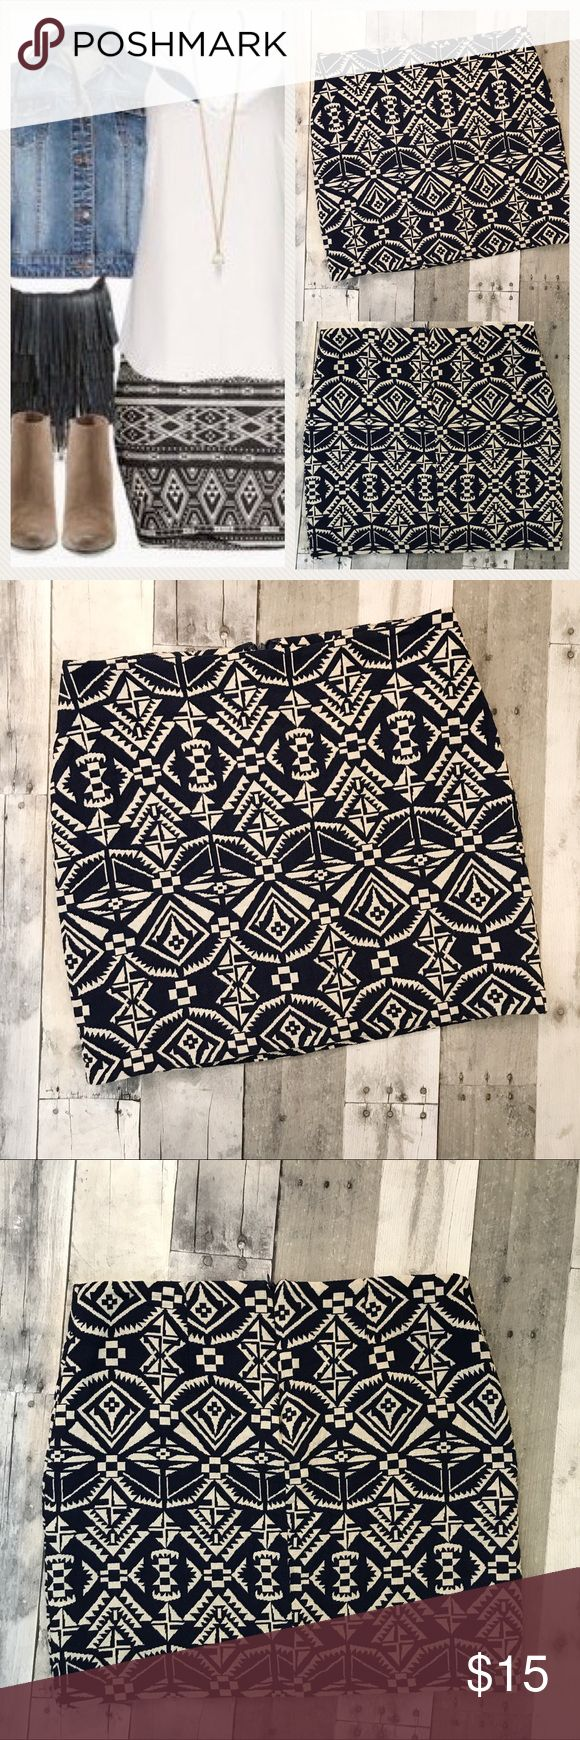 """Forever 21 Tribal Print Skirt, Sz M Navy and Off-White tribal print skirt Hidden zipper in back Fully lined. (The lining is slightly longer than the skirt. The lining just needs to be snipped off or hemmed) It's a really cute skirt. The fabric is soft but textured. I wish this one was my size. Shell 100% Cotton Lining 100% Polyester  *All measurements are approximate. I do my best to be accurate. Waist 15.5"""" Length 15.75""""  *Stock and modeled photos are for style inspiration only. They are…"""